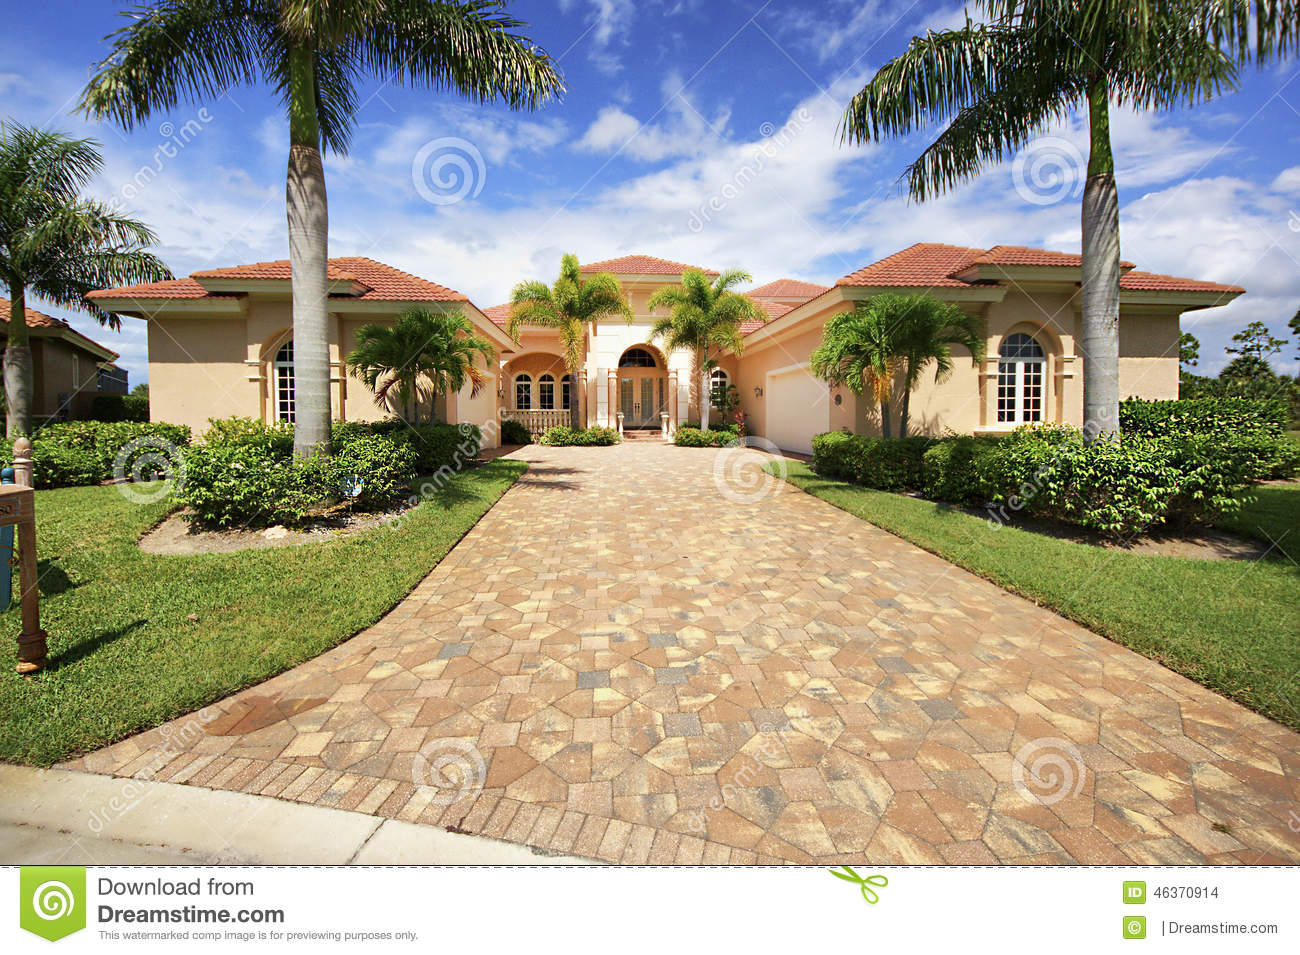 Florida Luxury Home With Paver Block Driveway Stock Photo